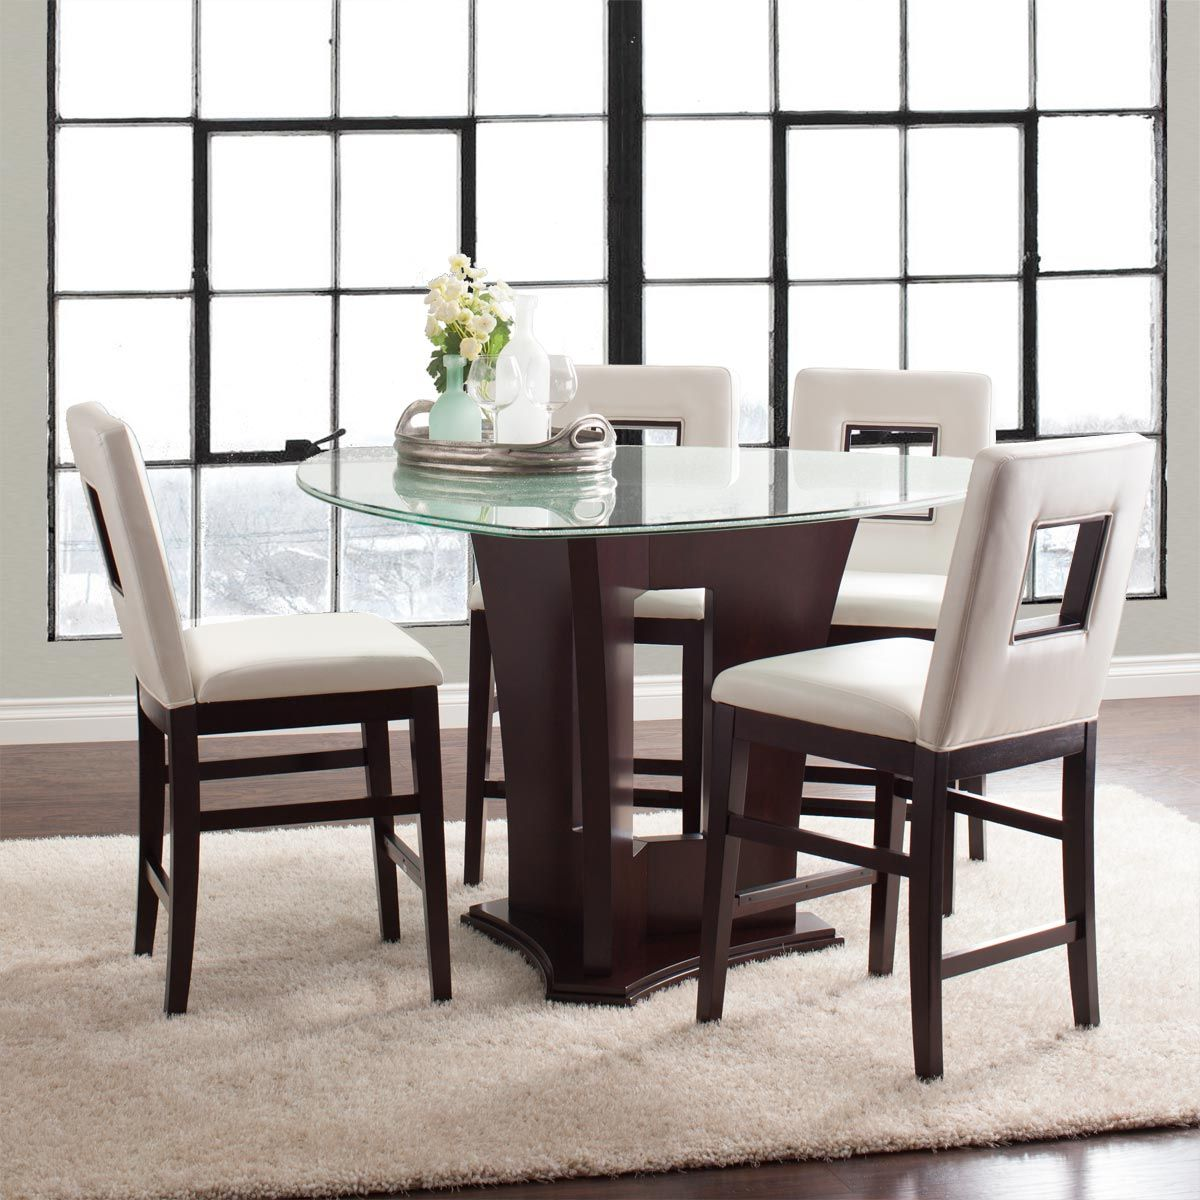 The Soho 5 Piece Glass Dining Set Offers Contemporary Style With A Beautiful Crackled Glass Table Glass Dining Room Sets Glass Dining Table Modern Dining Room